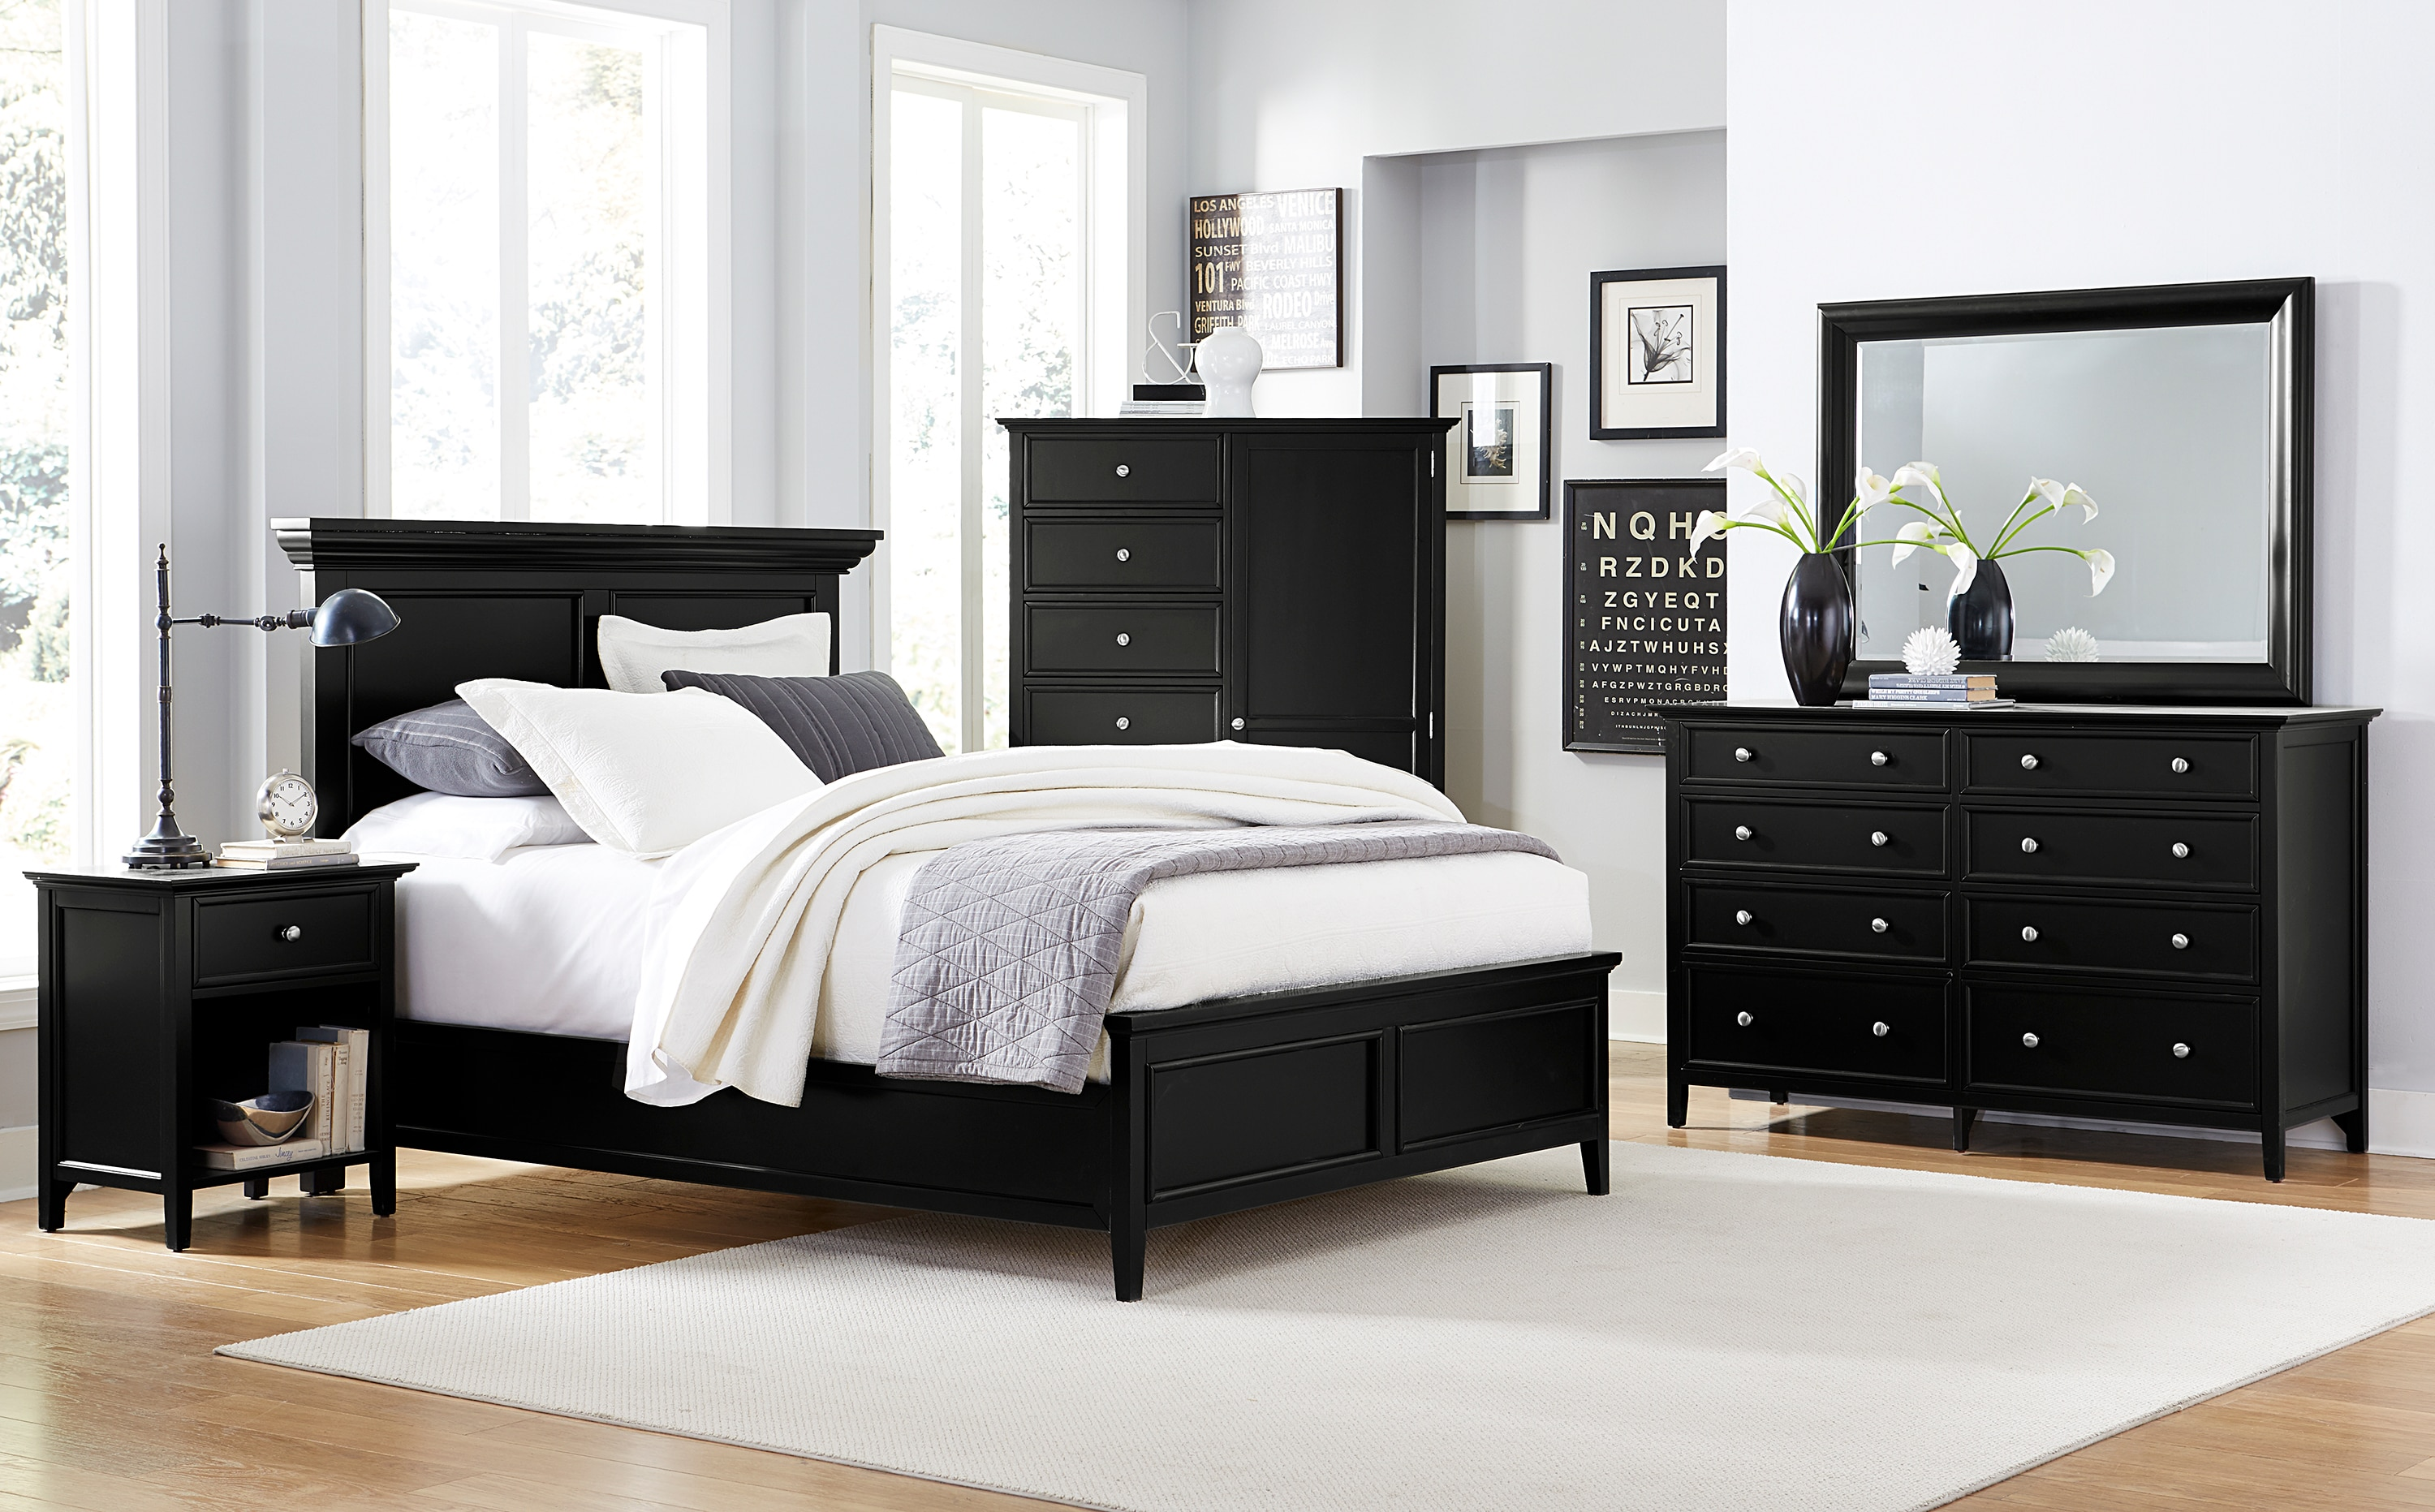 Ellsworth 4-Piece Queen Bedroom Set - Black